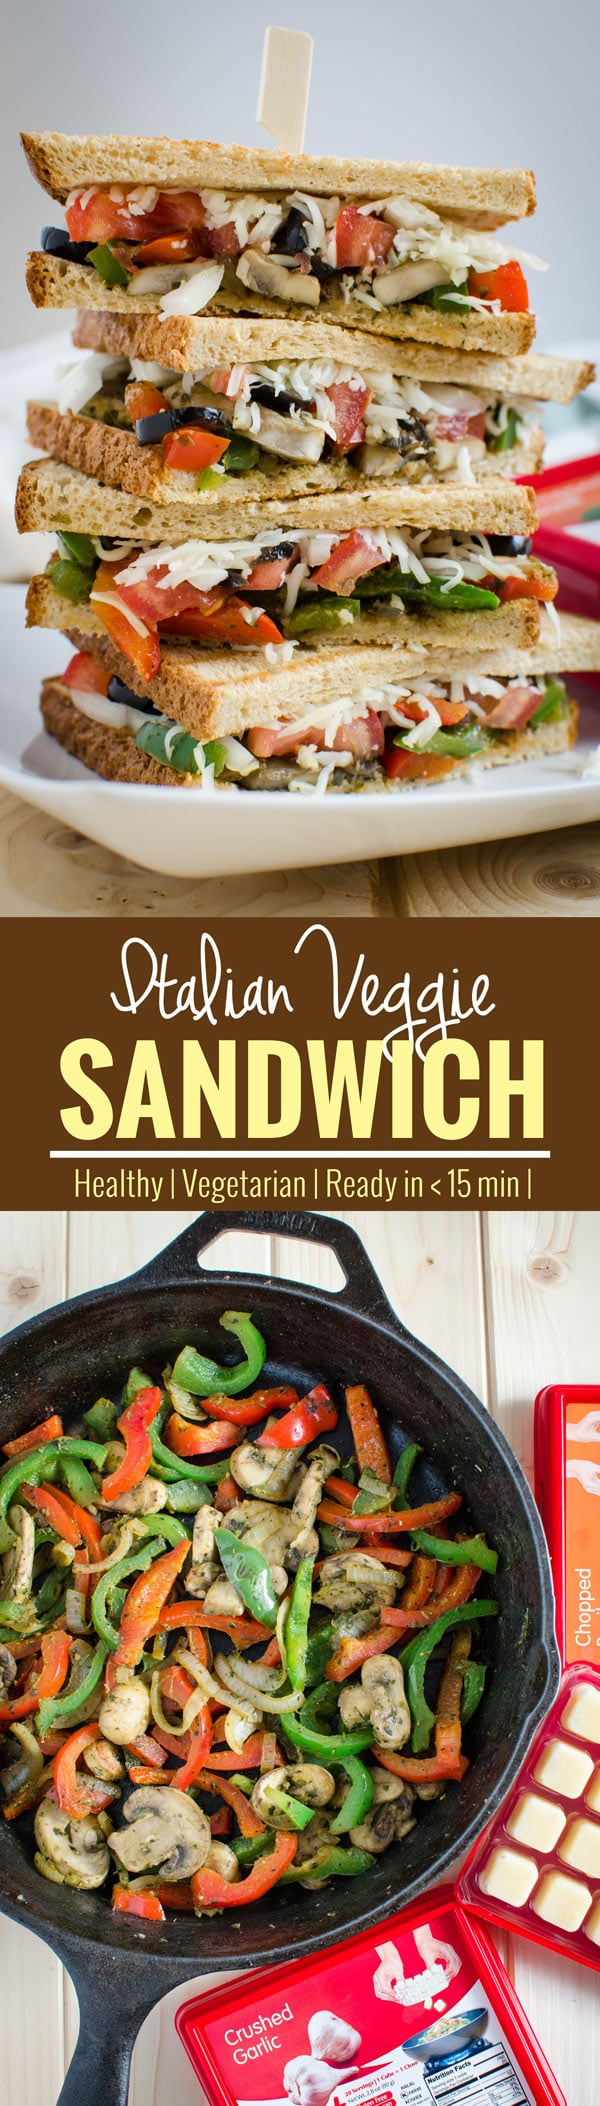 15 min Italian flavored Veggie Sandwich Recipe! An easy, meatless and healthy recipe for breakfast or lunch. Coupon included for frozen herbs. #ad | watchwhatueat.com